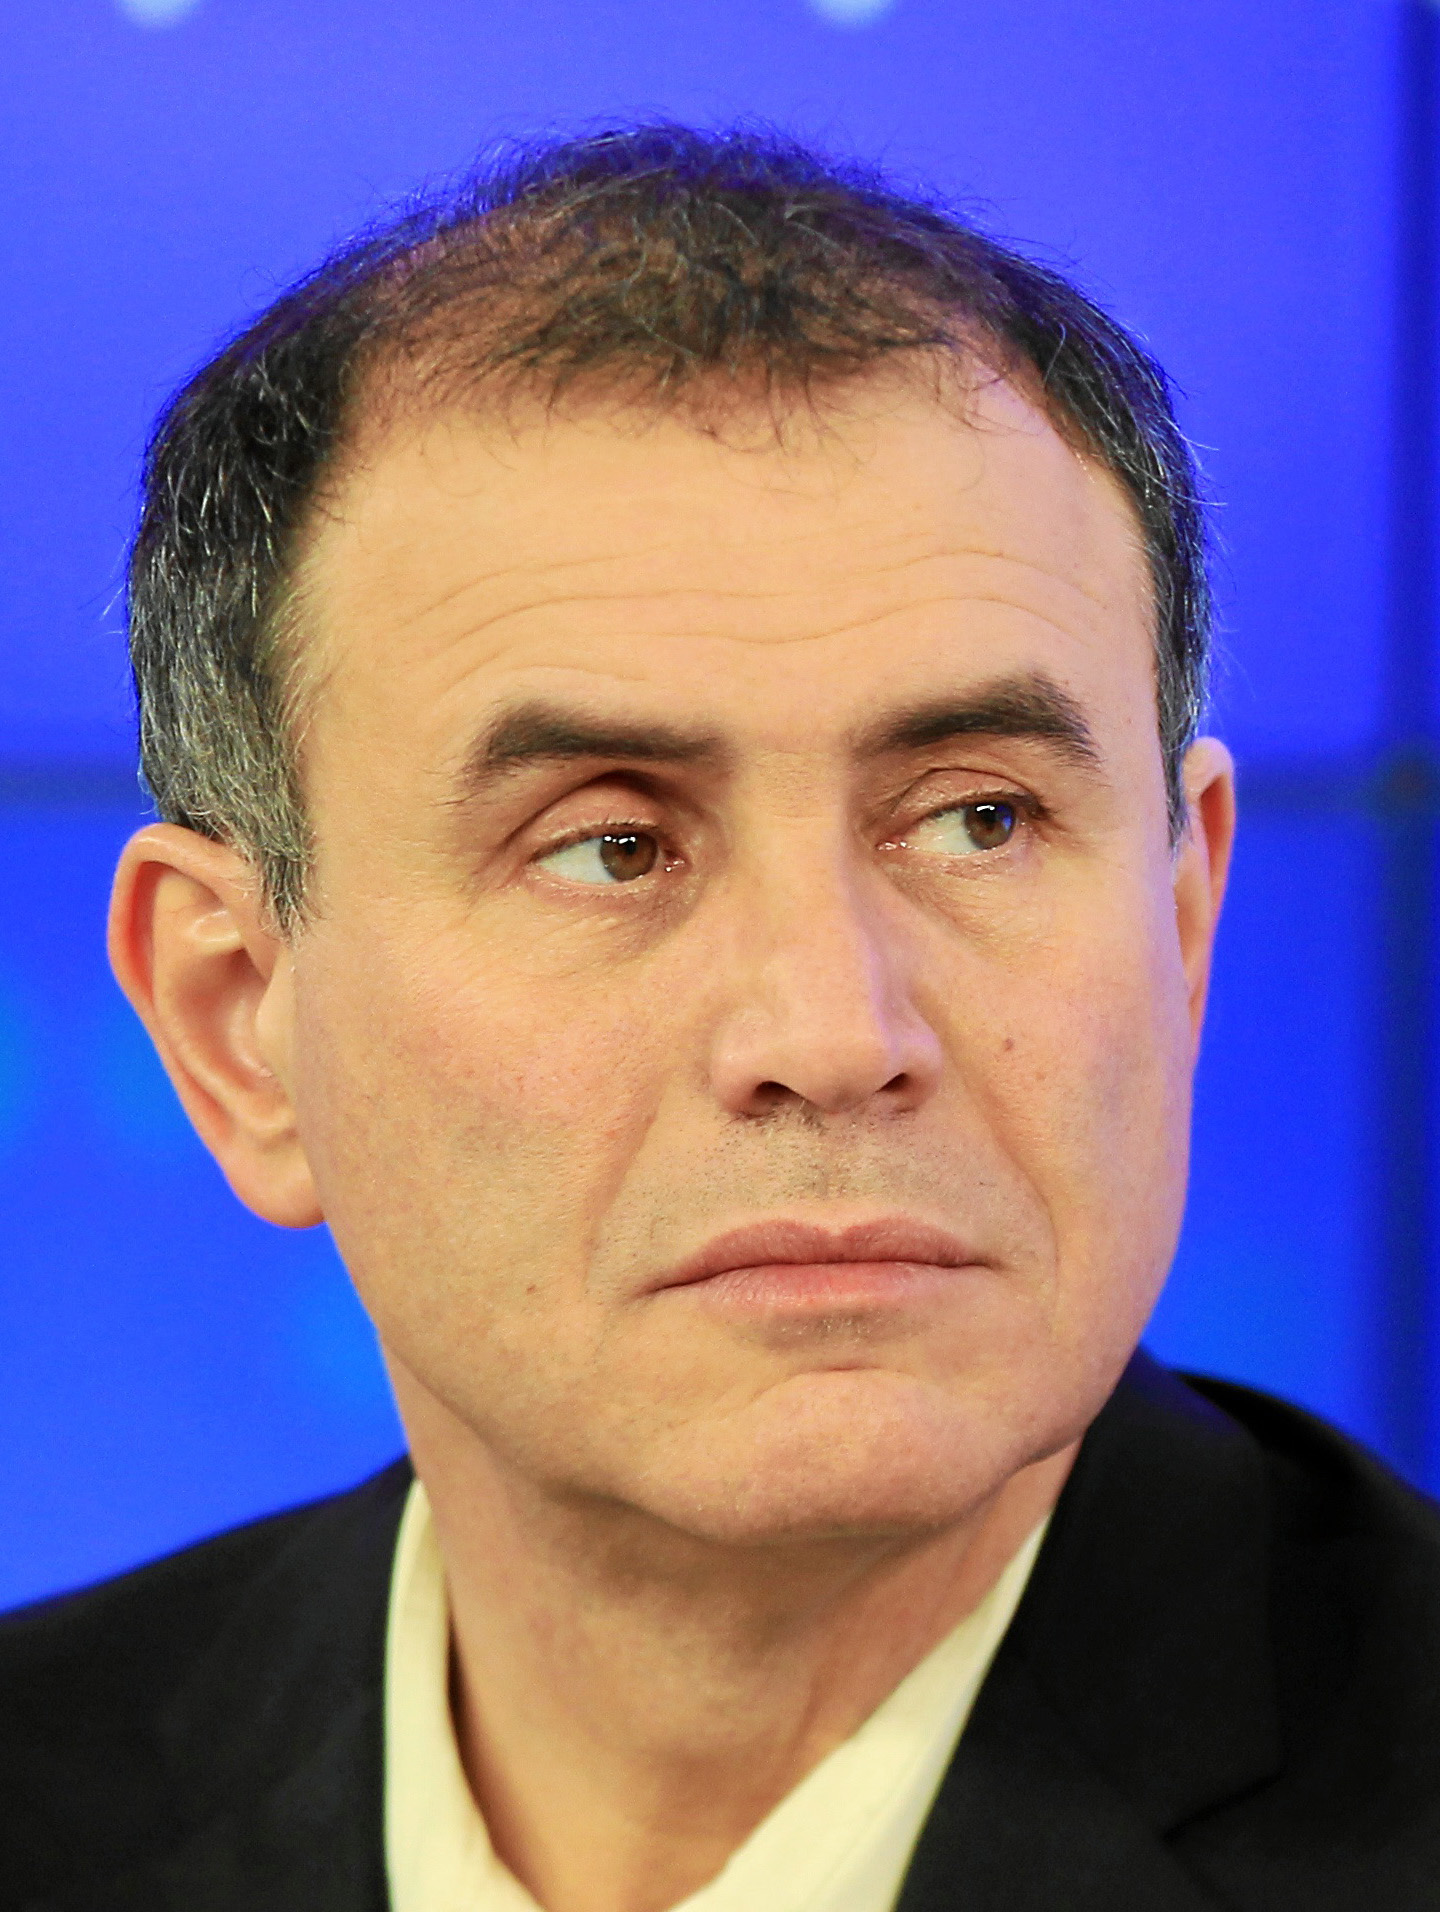 nouriel_roubini_world_economic_forum_annual_meeting_2012_cropped.jpg